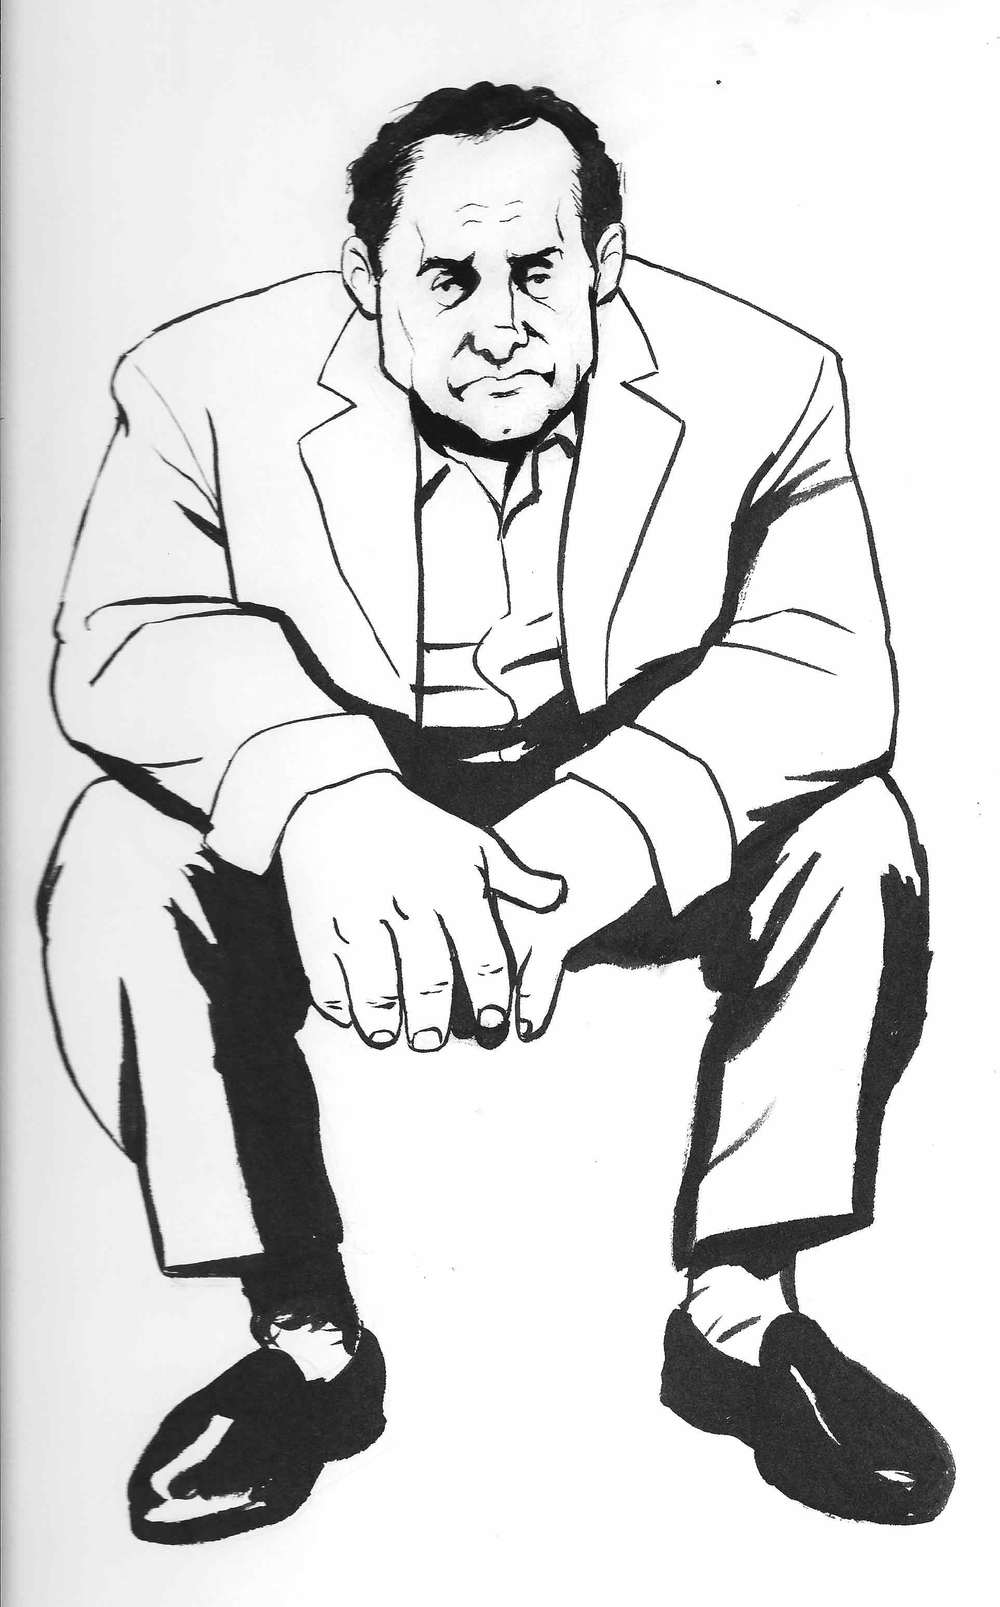 This sketch was based off a great photo of James Gandolfini from The Sopranos.